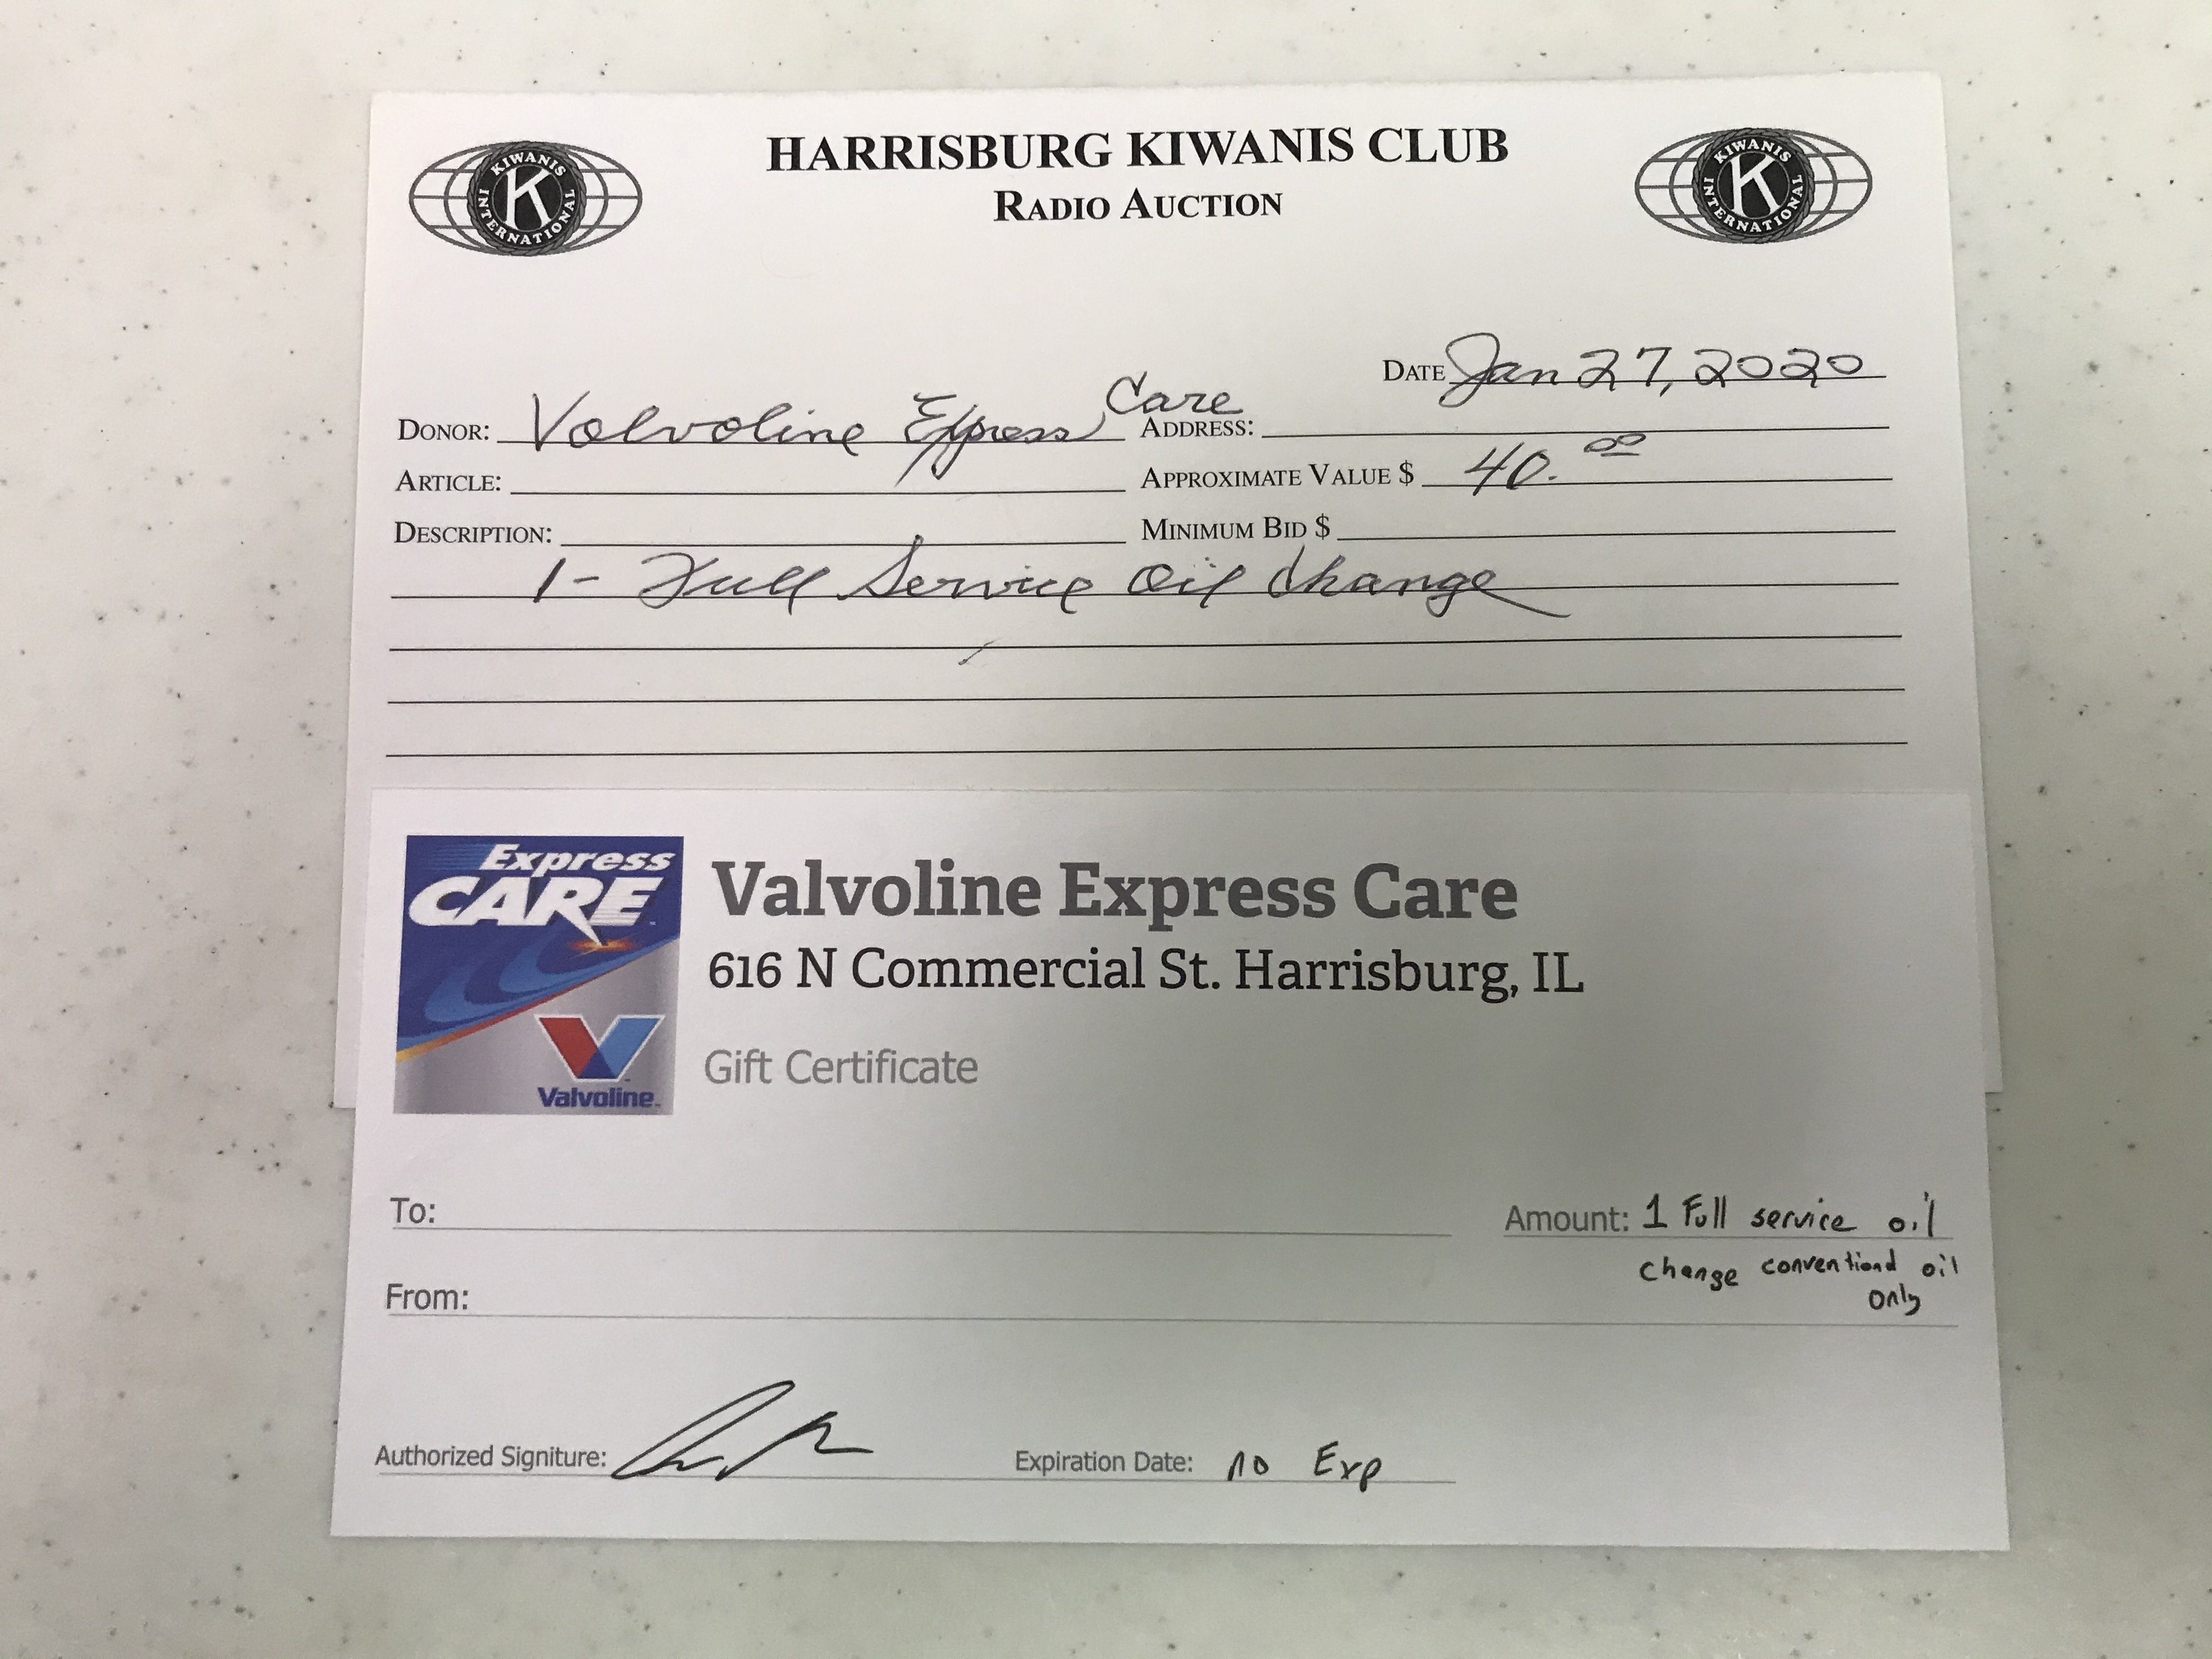 Item 218 - Valvoline Express Care 1 Free Full Service Oil Change - Conventional Oil Only